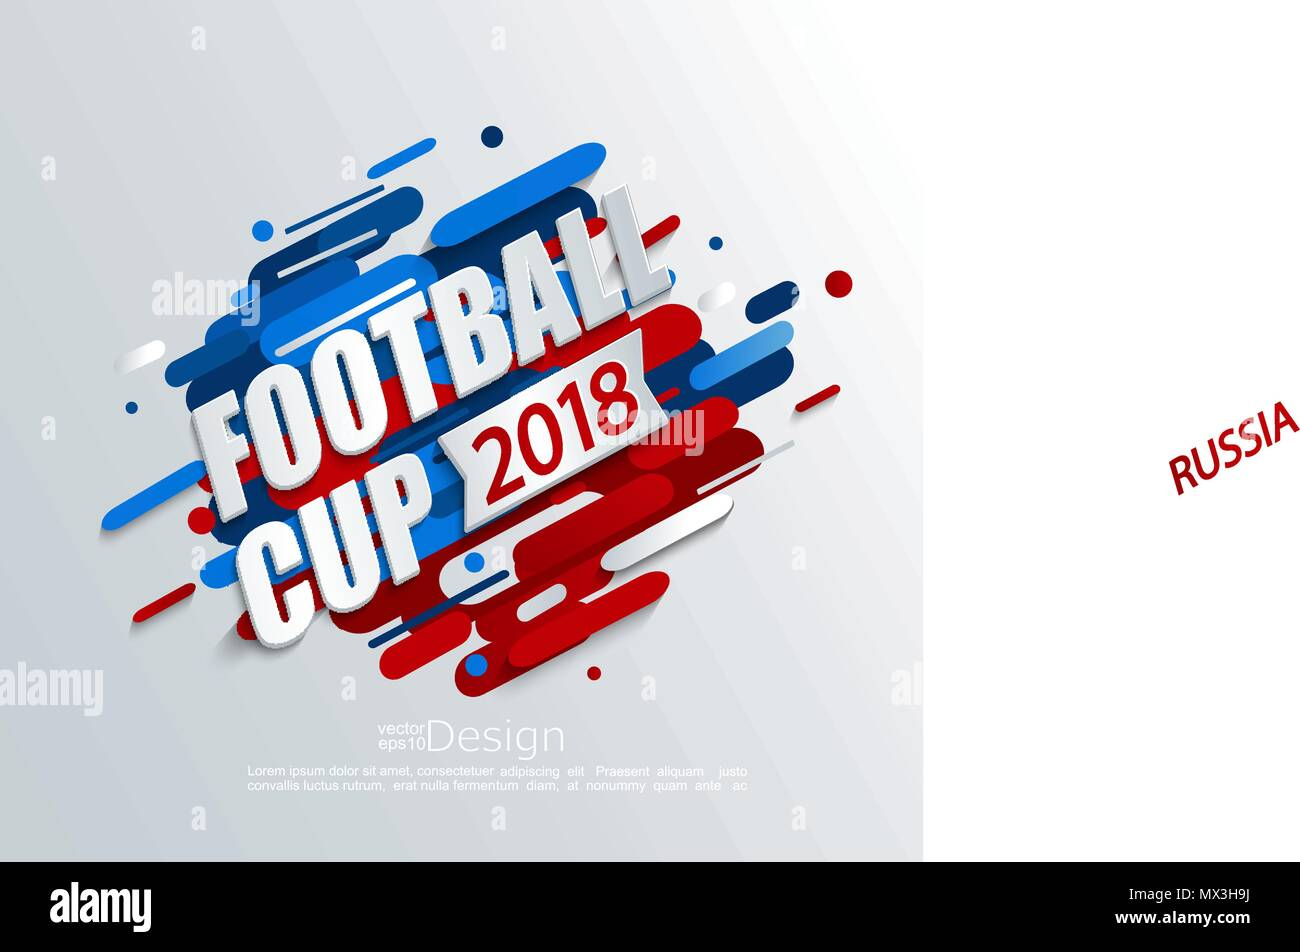 Vector illustration for a football cup 2018 on dynamic background. For the soccer championship.Perfect for design cards, invitations, gift cards, flyers, brochures, banners and so on. Stock Vector